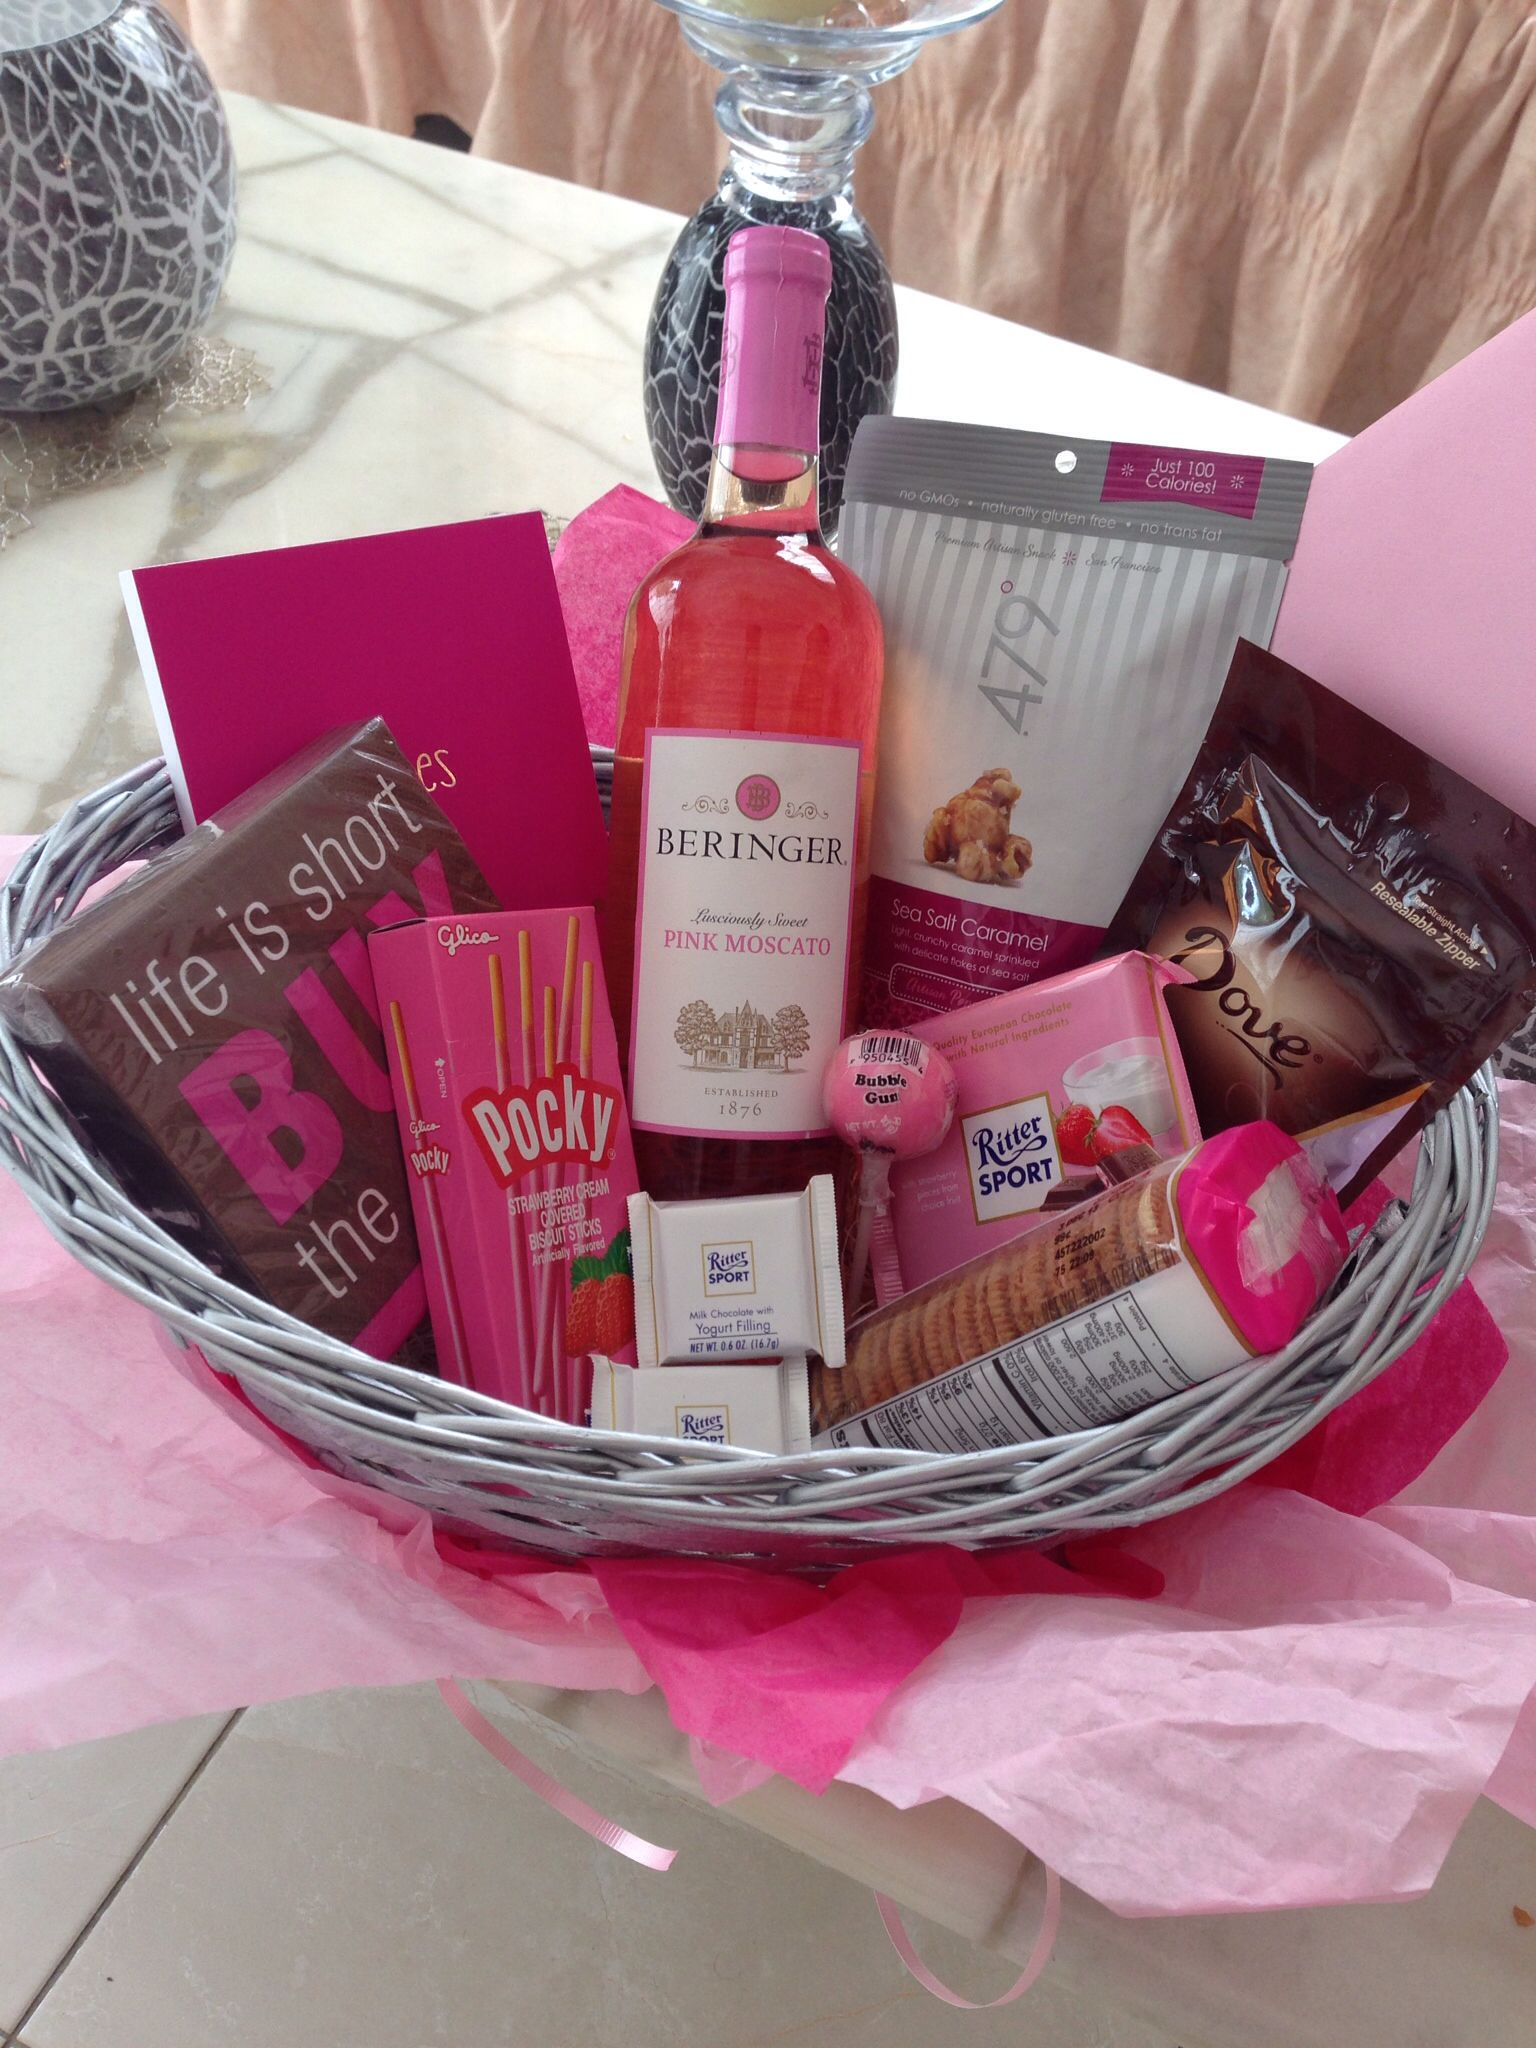 The Best Friend Basket With Pink Moscato Gift Basket